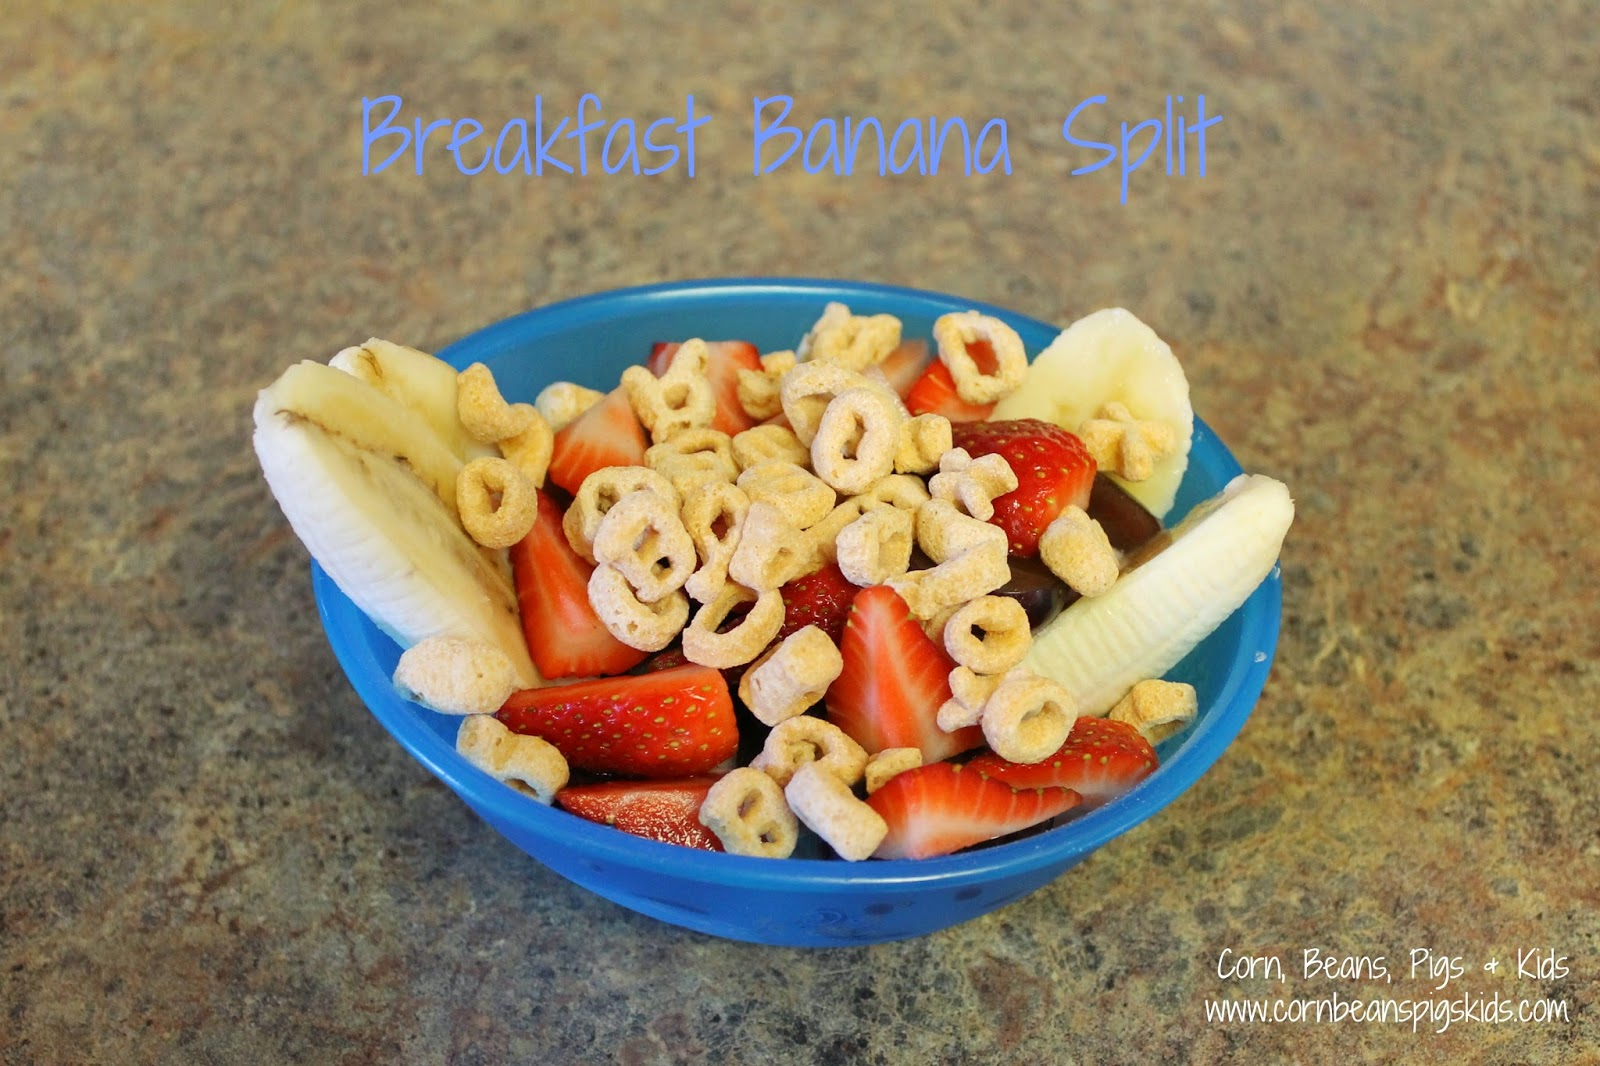 Trying something fun, easy and different for breakfast - Breakfast Banana Split recipe